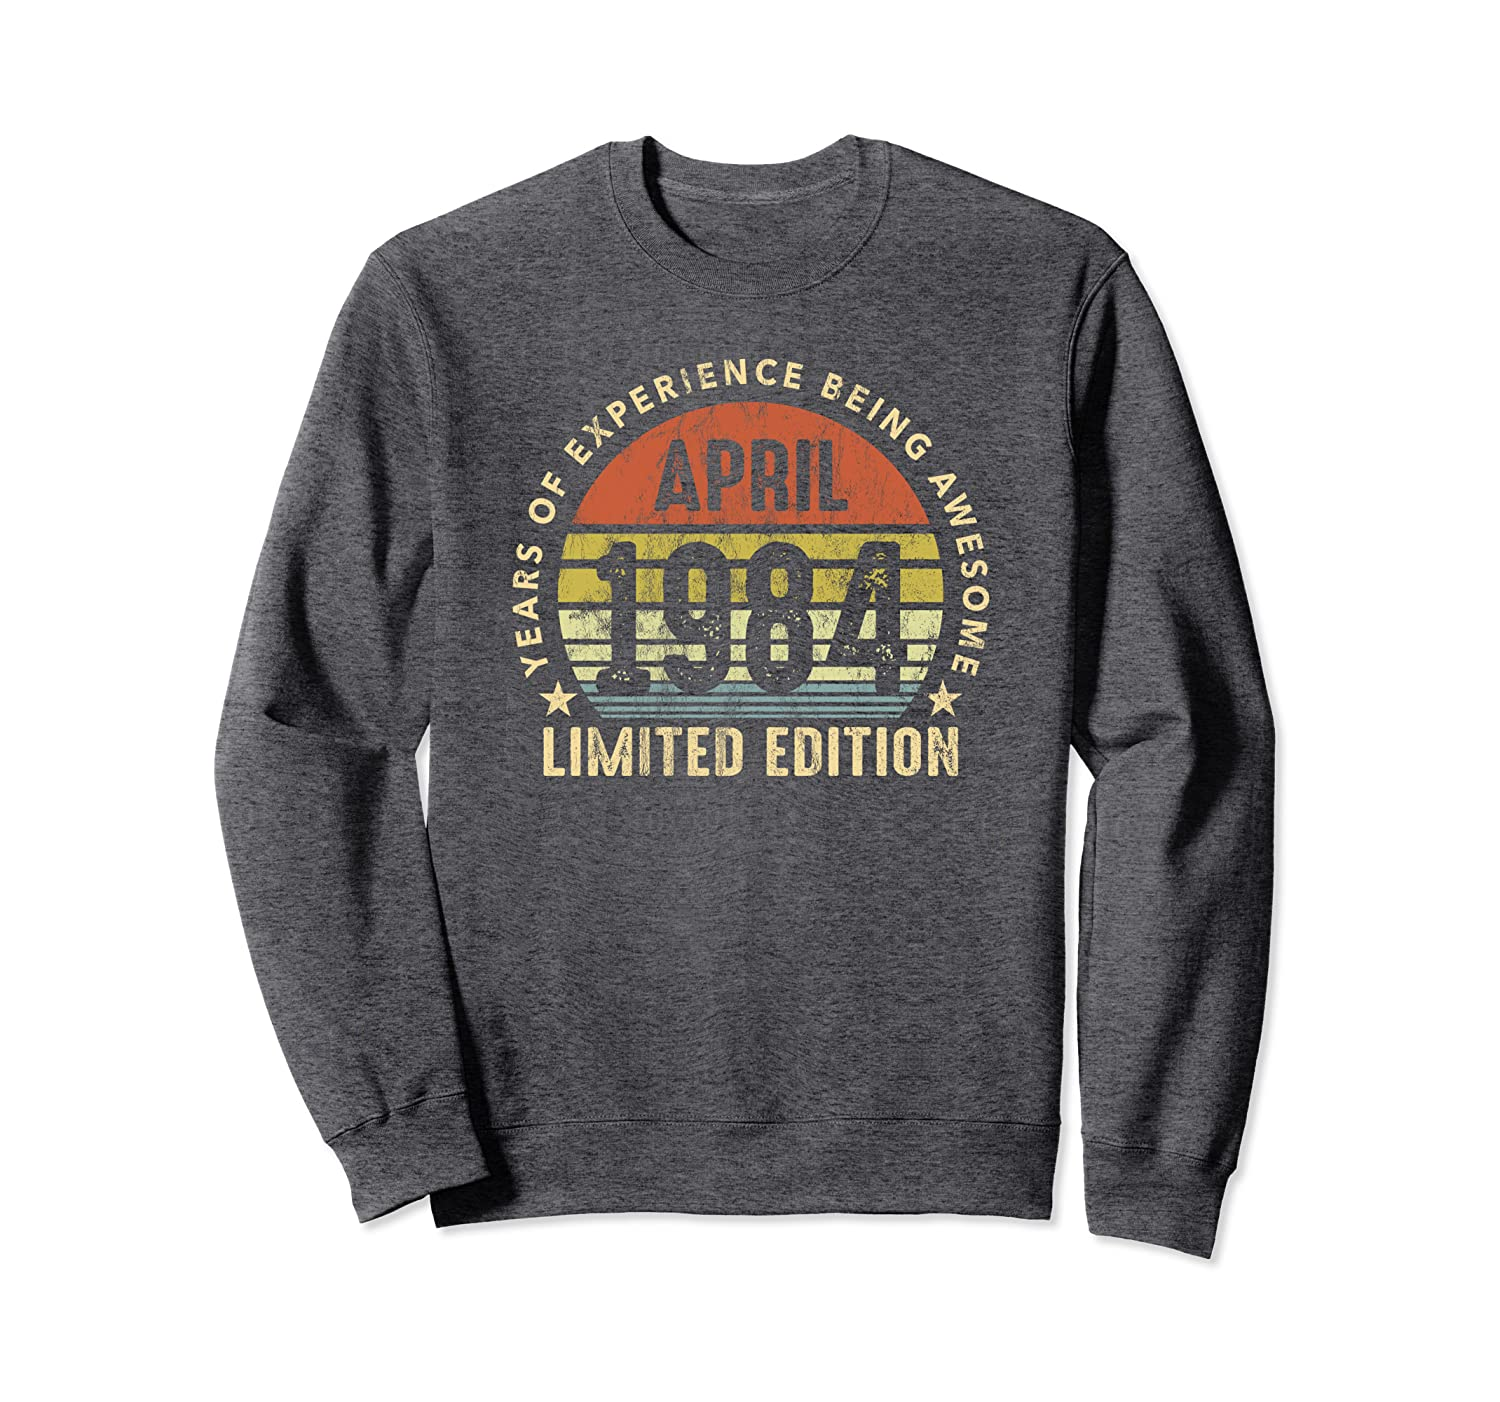 Born In April 1984 Sunset Limited Edition 36th Birthday Sweatshirt